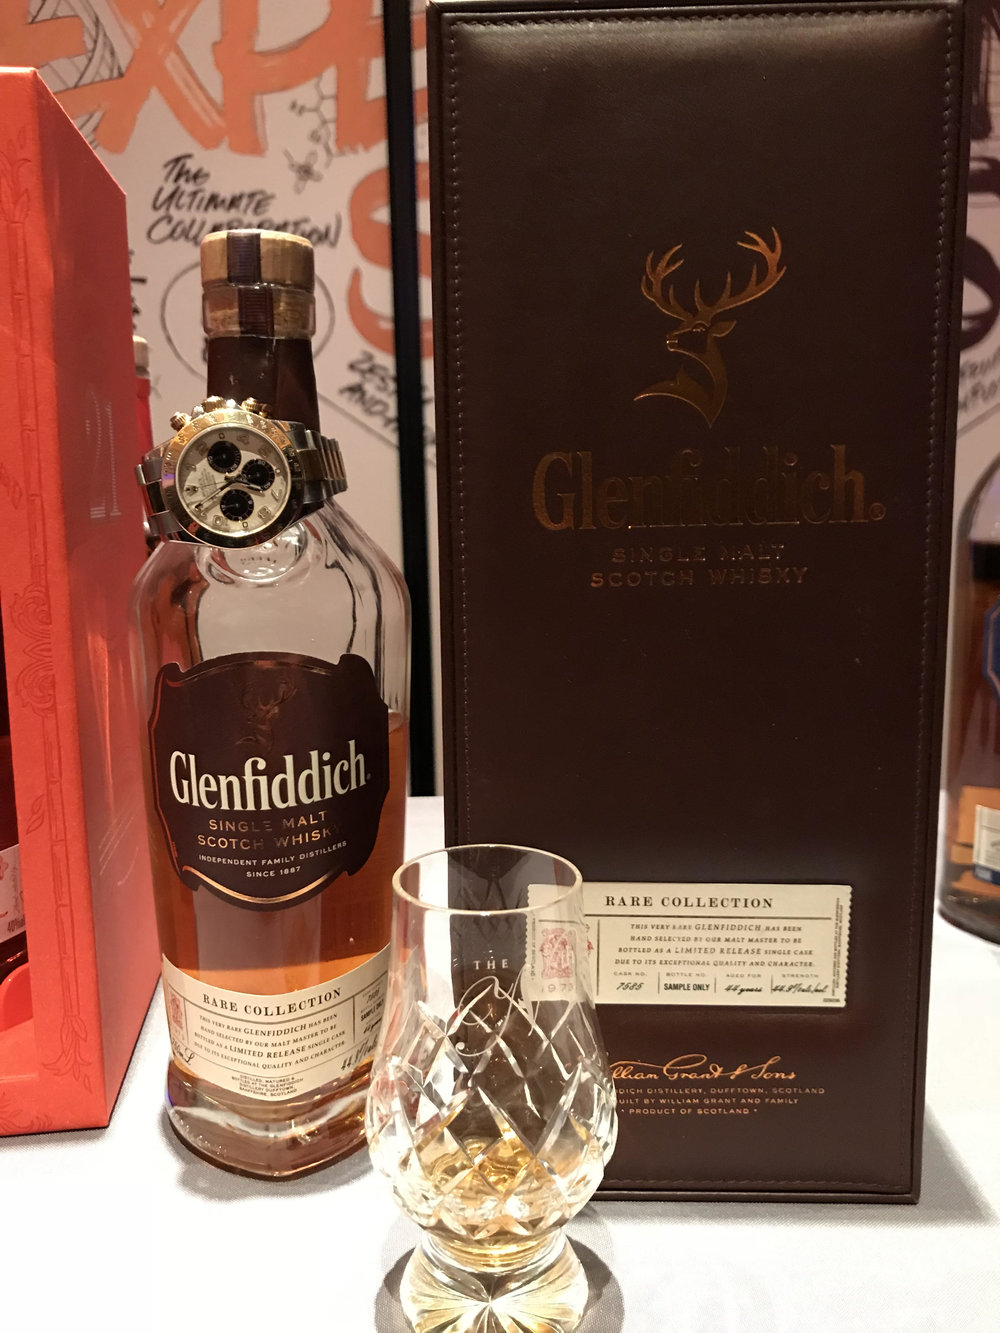 Glenfiddich Rare Collection - 1973 44 Years Old